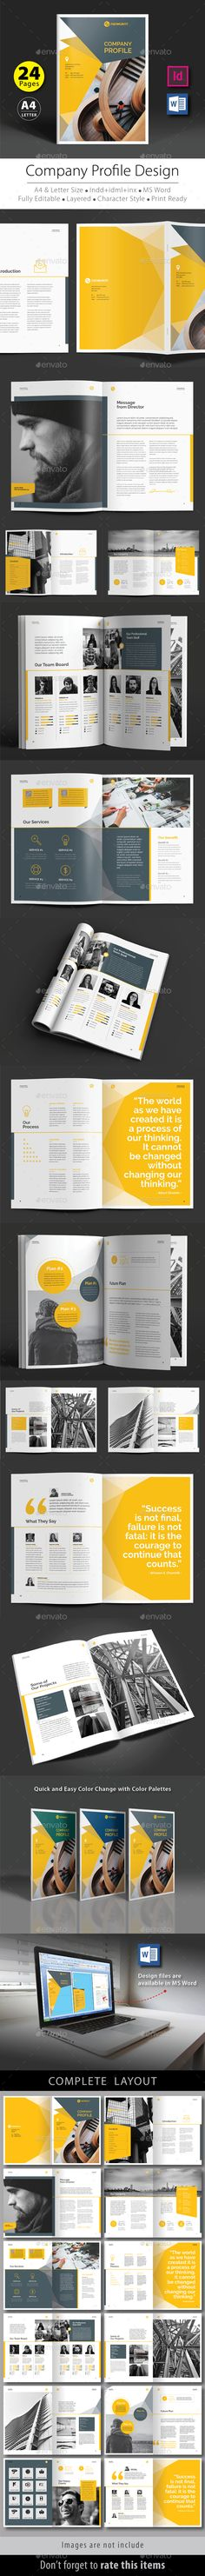 Company Profile Powerpoint Template Graphics, Templates and - company profile templates word